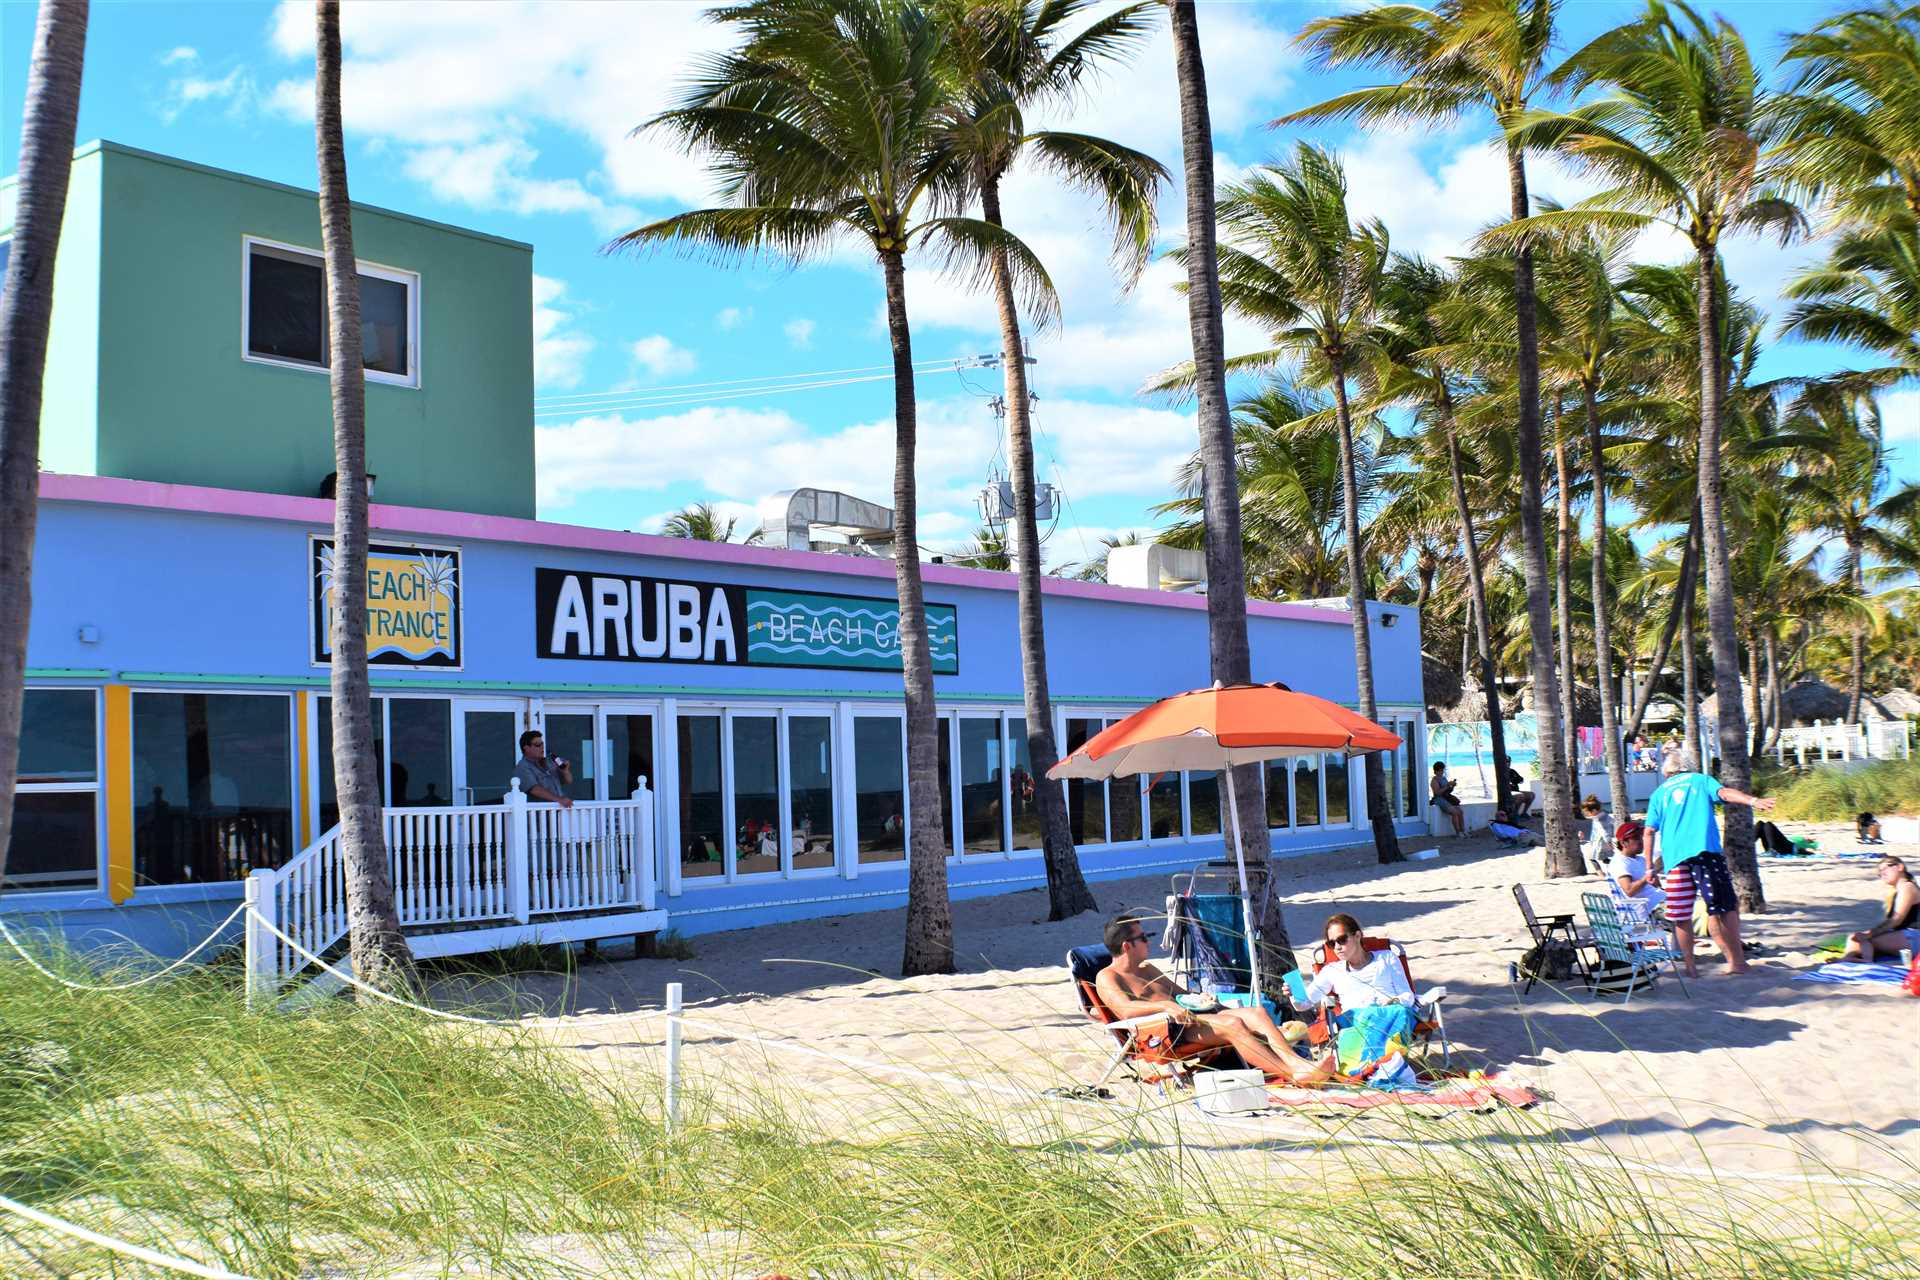 The world famous Aruba Cafe is right on the beach.